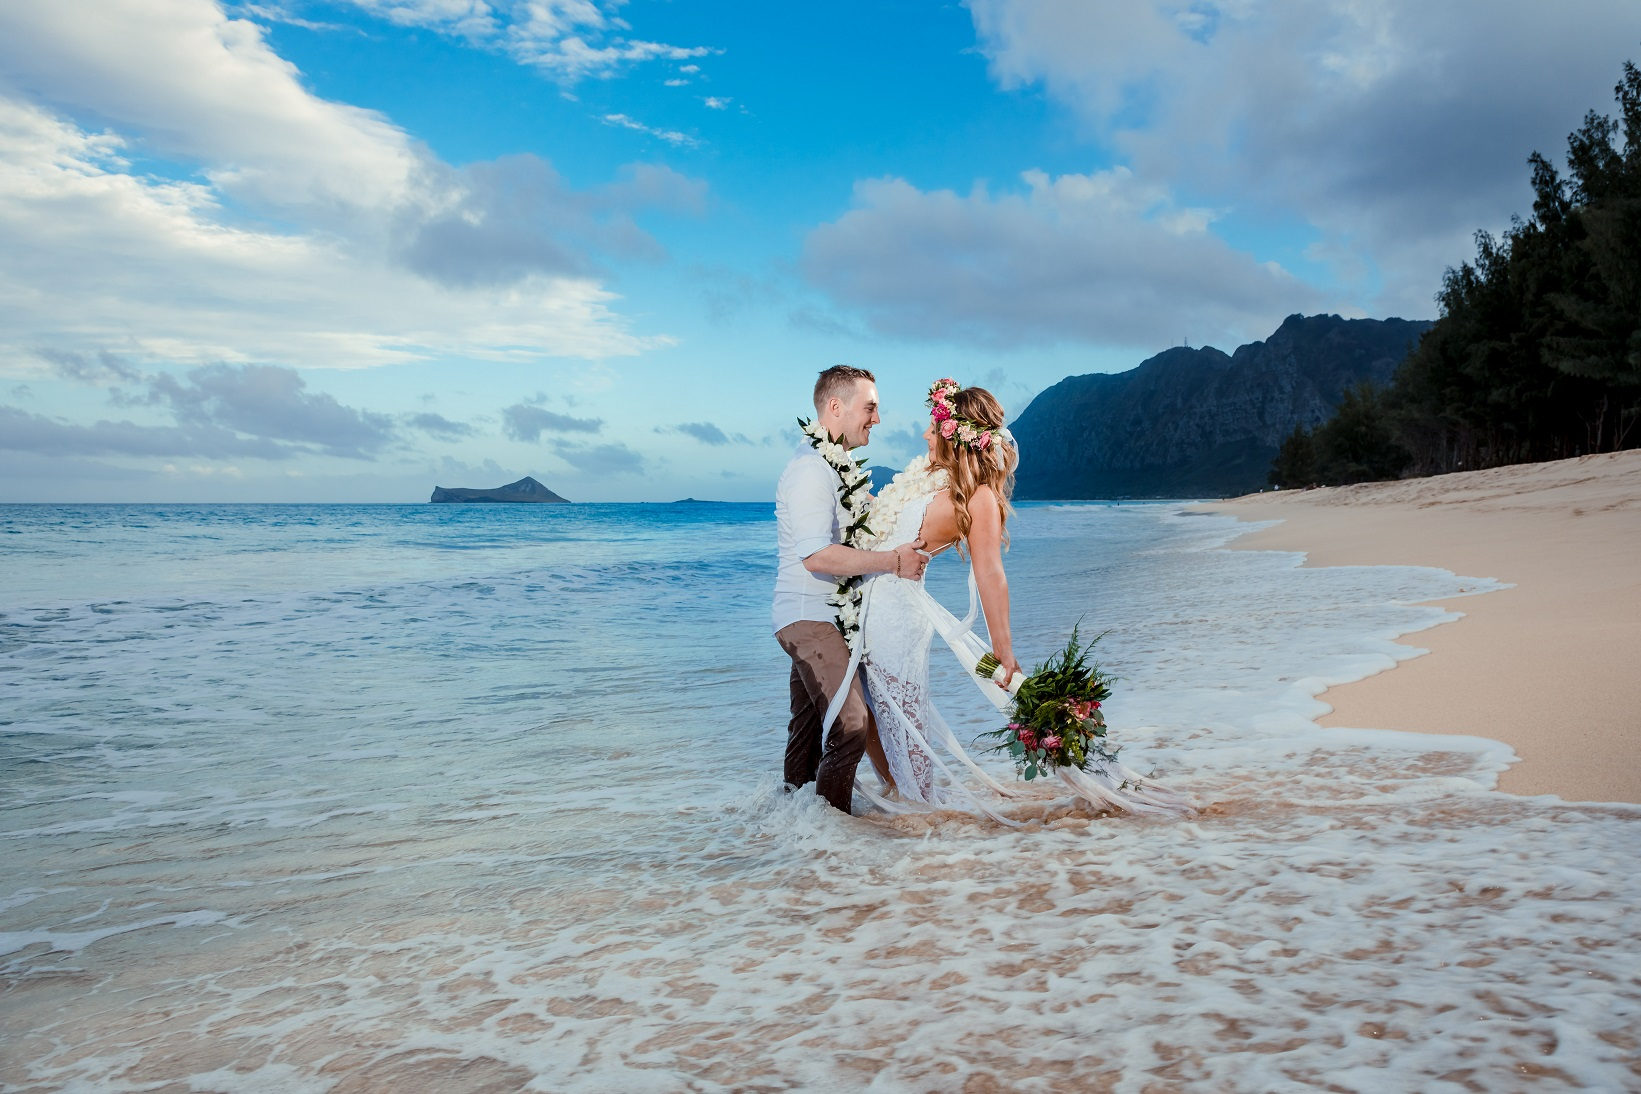 Romantic wedding portrait in the surf on the beach at sunset on Hawaii... Sigh.